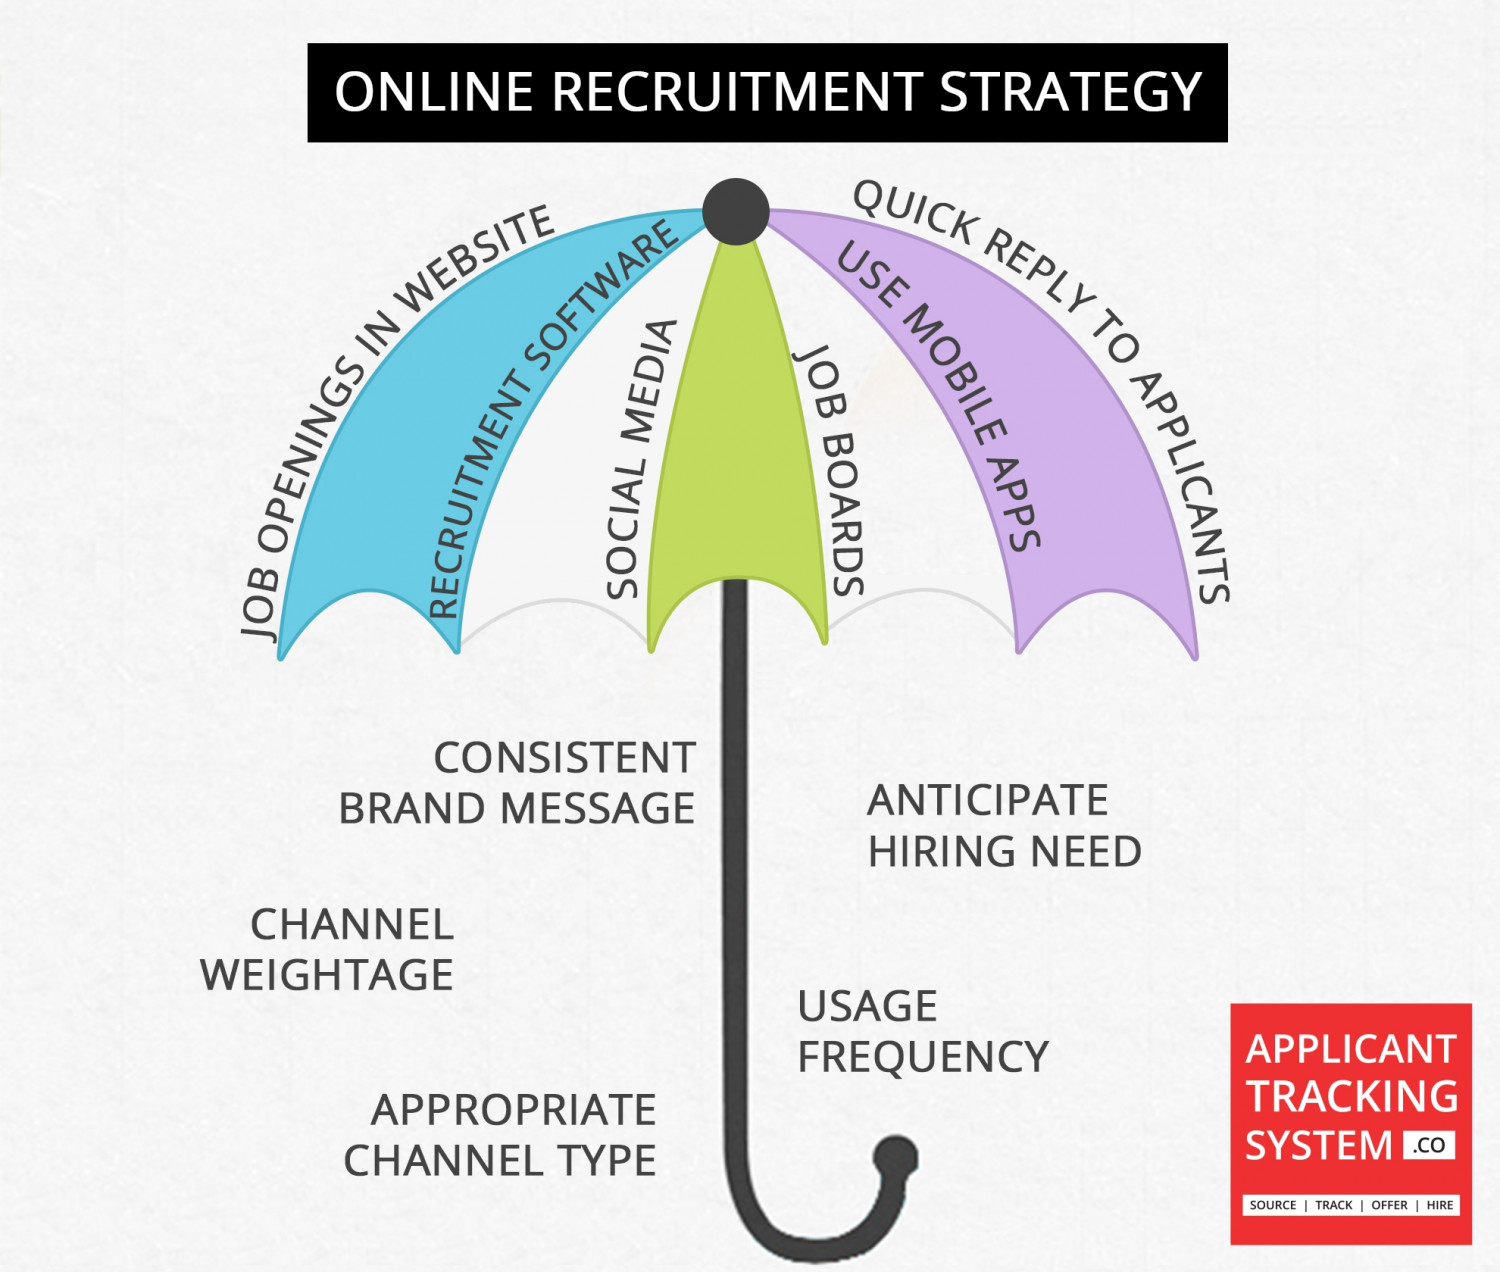 Online Recruitment Online Recruitment Strategy | Visual.ly